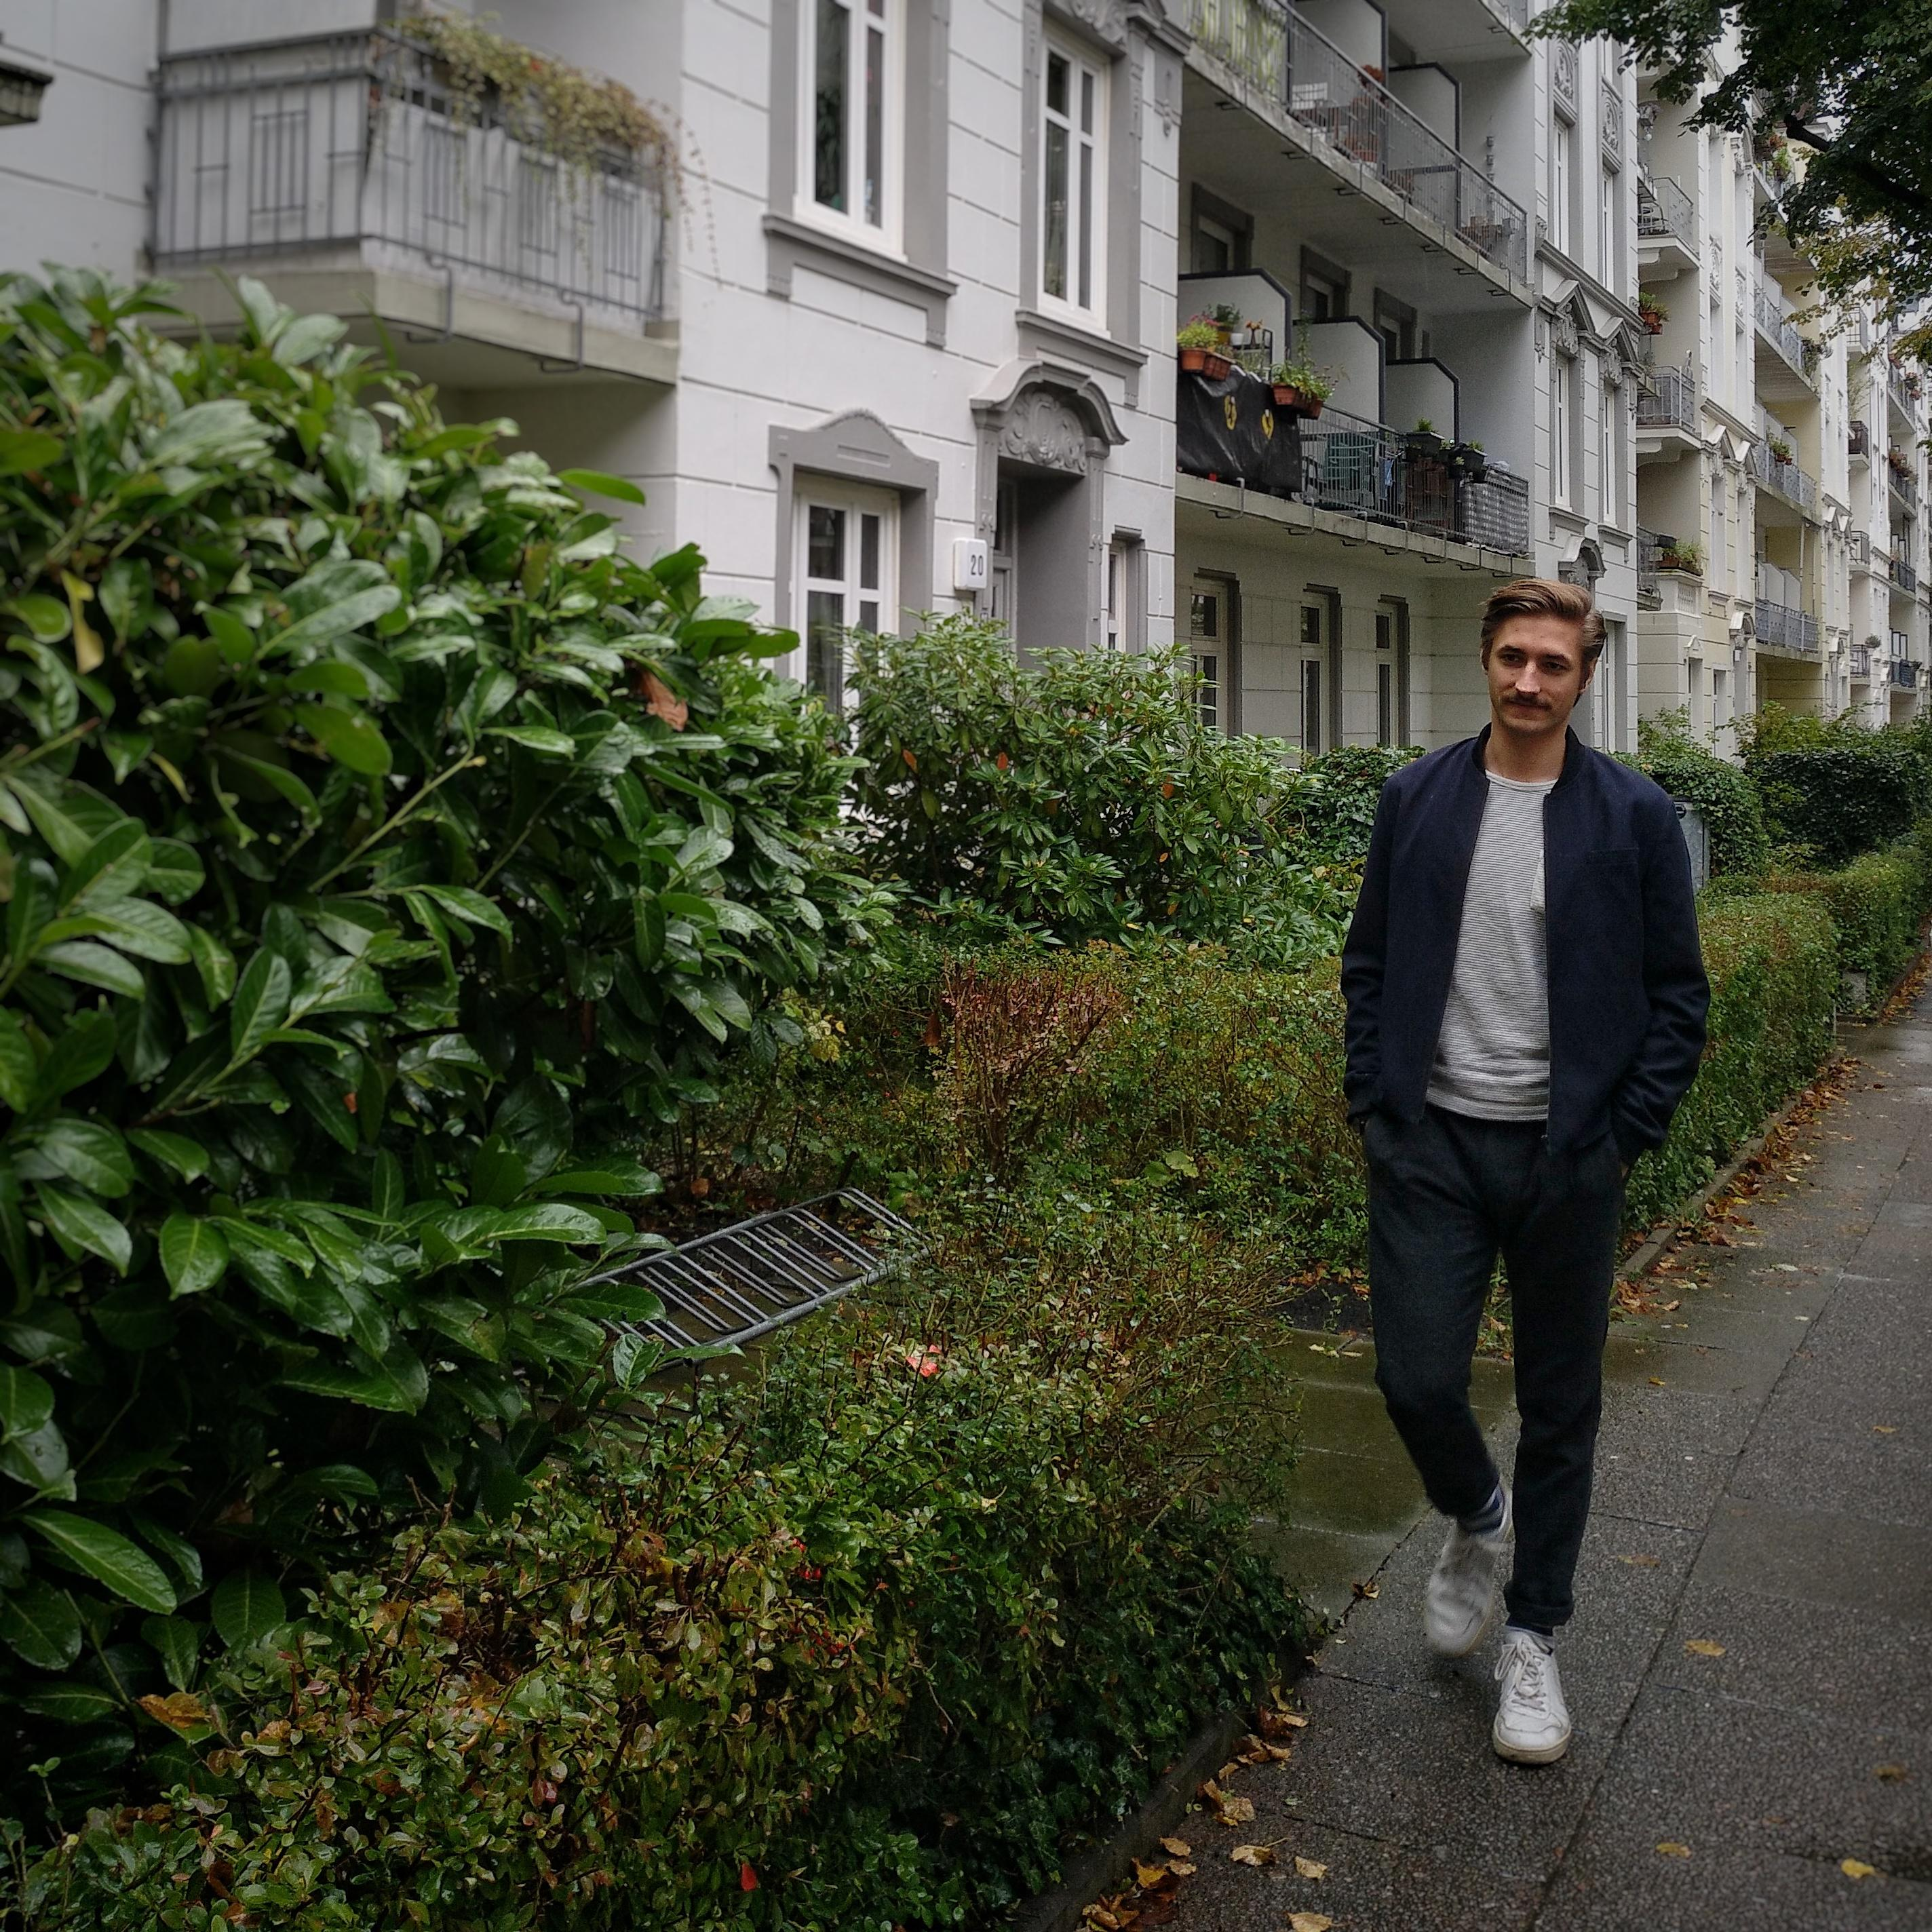 Mein spätes Herbstoutfit #ootd #outfit #style #menstyle #fashionMister #LetsTwashIt